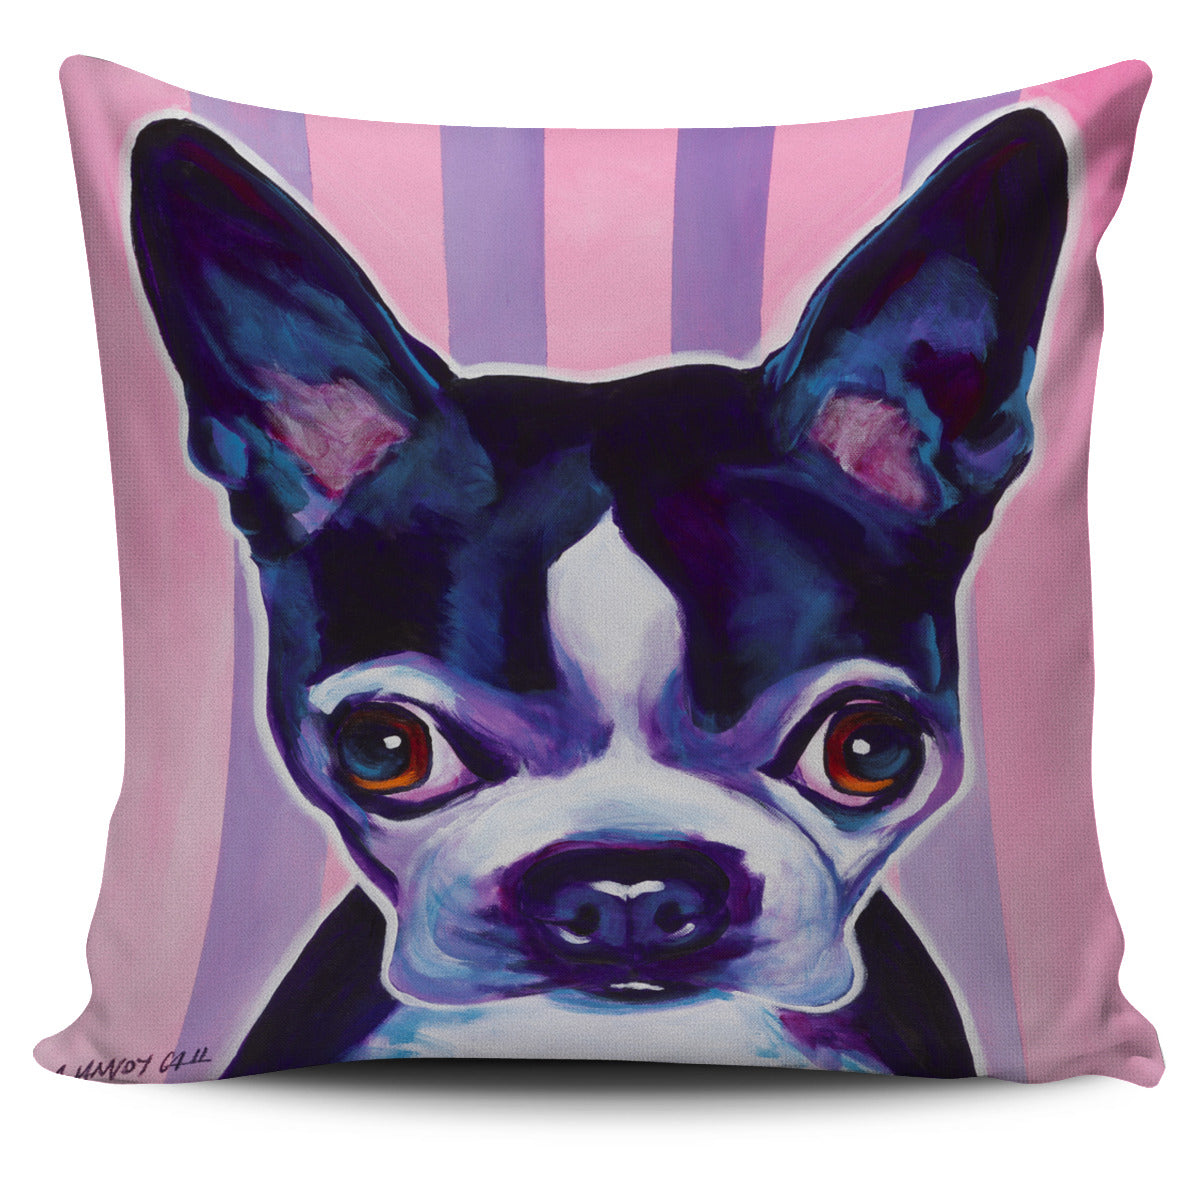 Missy Dog Pillow Cover